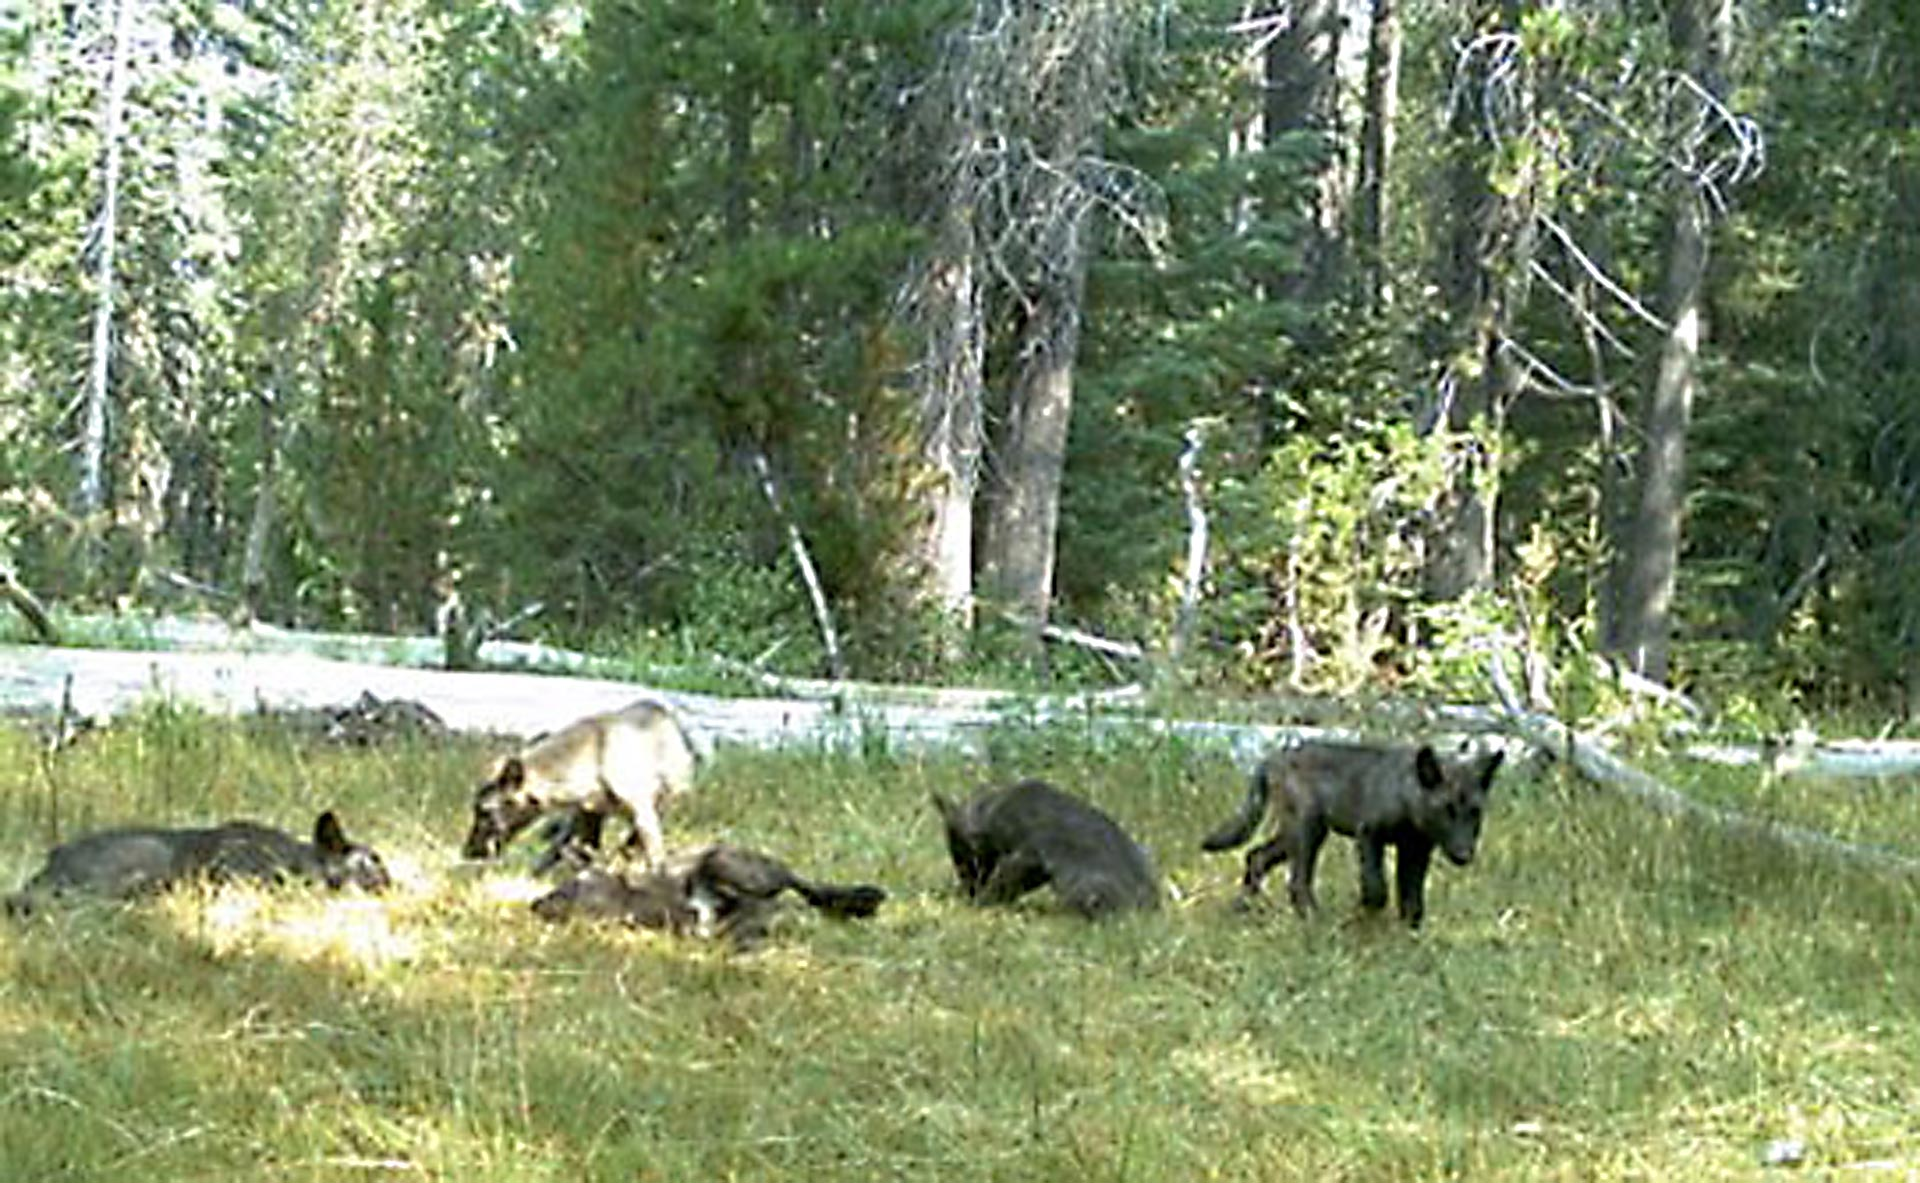 Several gray wolf pups, dubbed the Shasta Pack, were captured by a remote camera in Siskiyou County this past August. They were the first gray wolf pups found in the state in nearly a century.